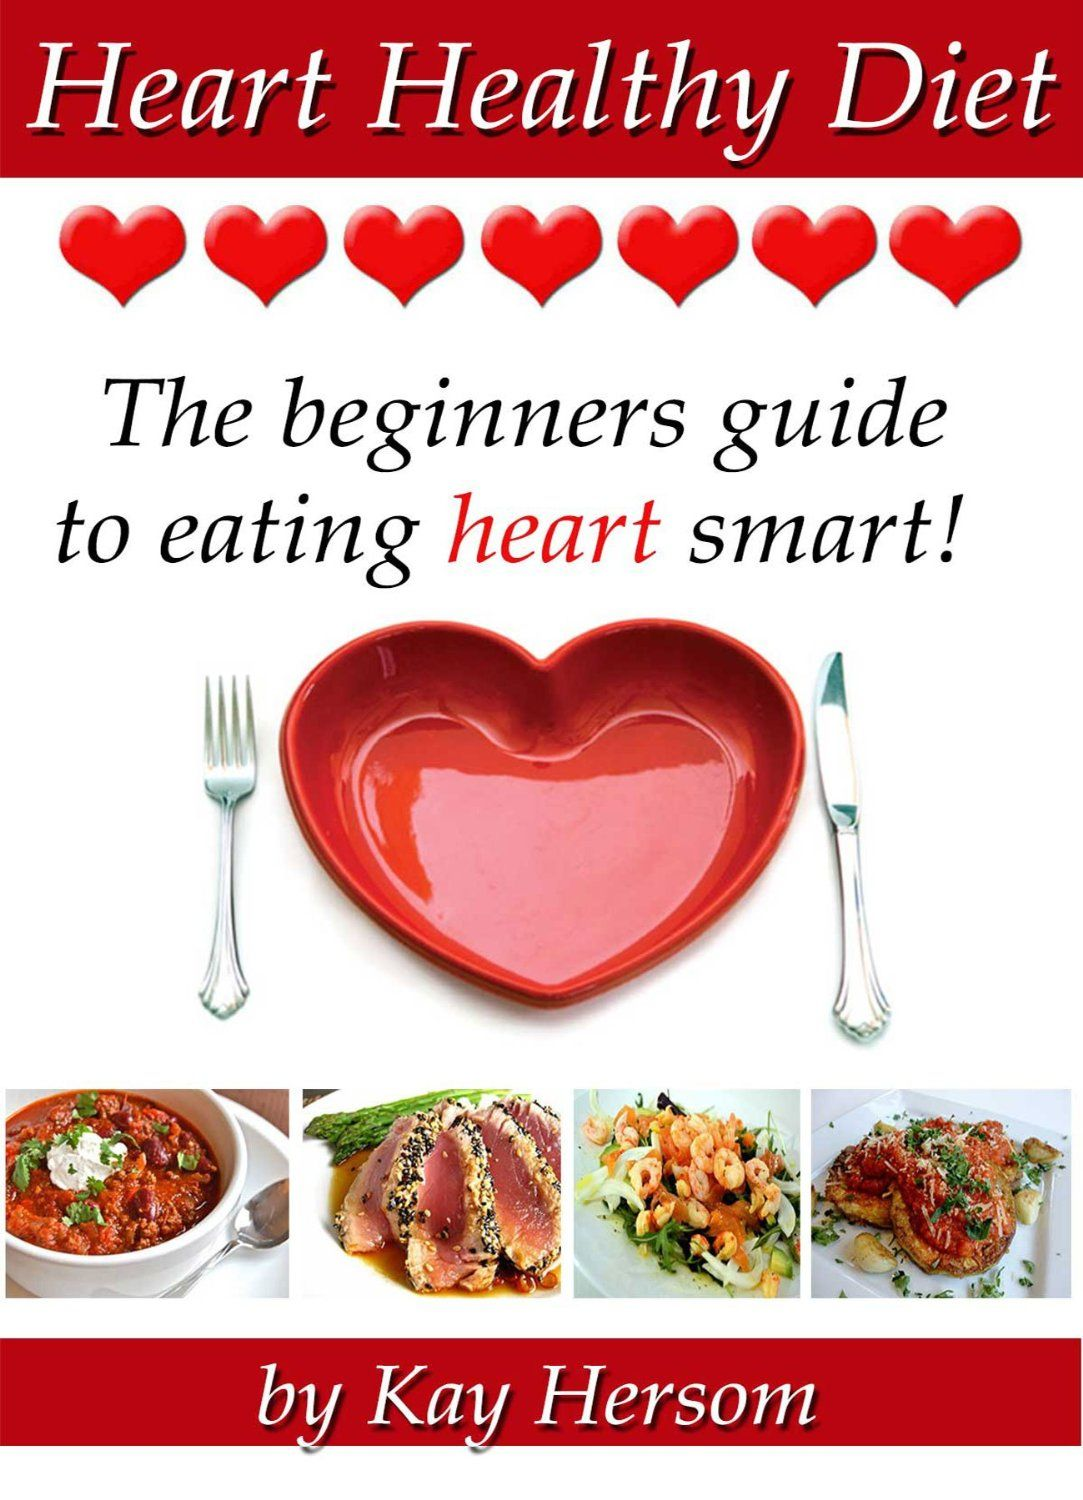 Heart Healthy Diet - The Beginners Guide to Eating Heart Smart!  by Kay Hersom ($4.16)